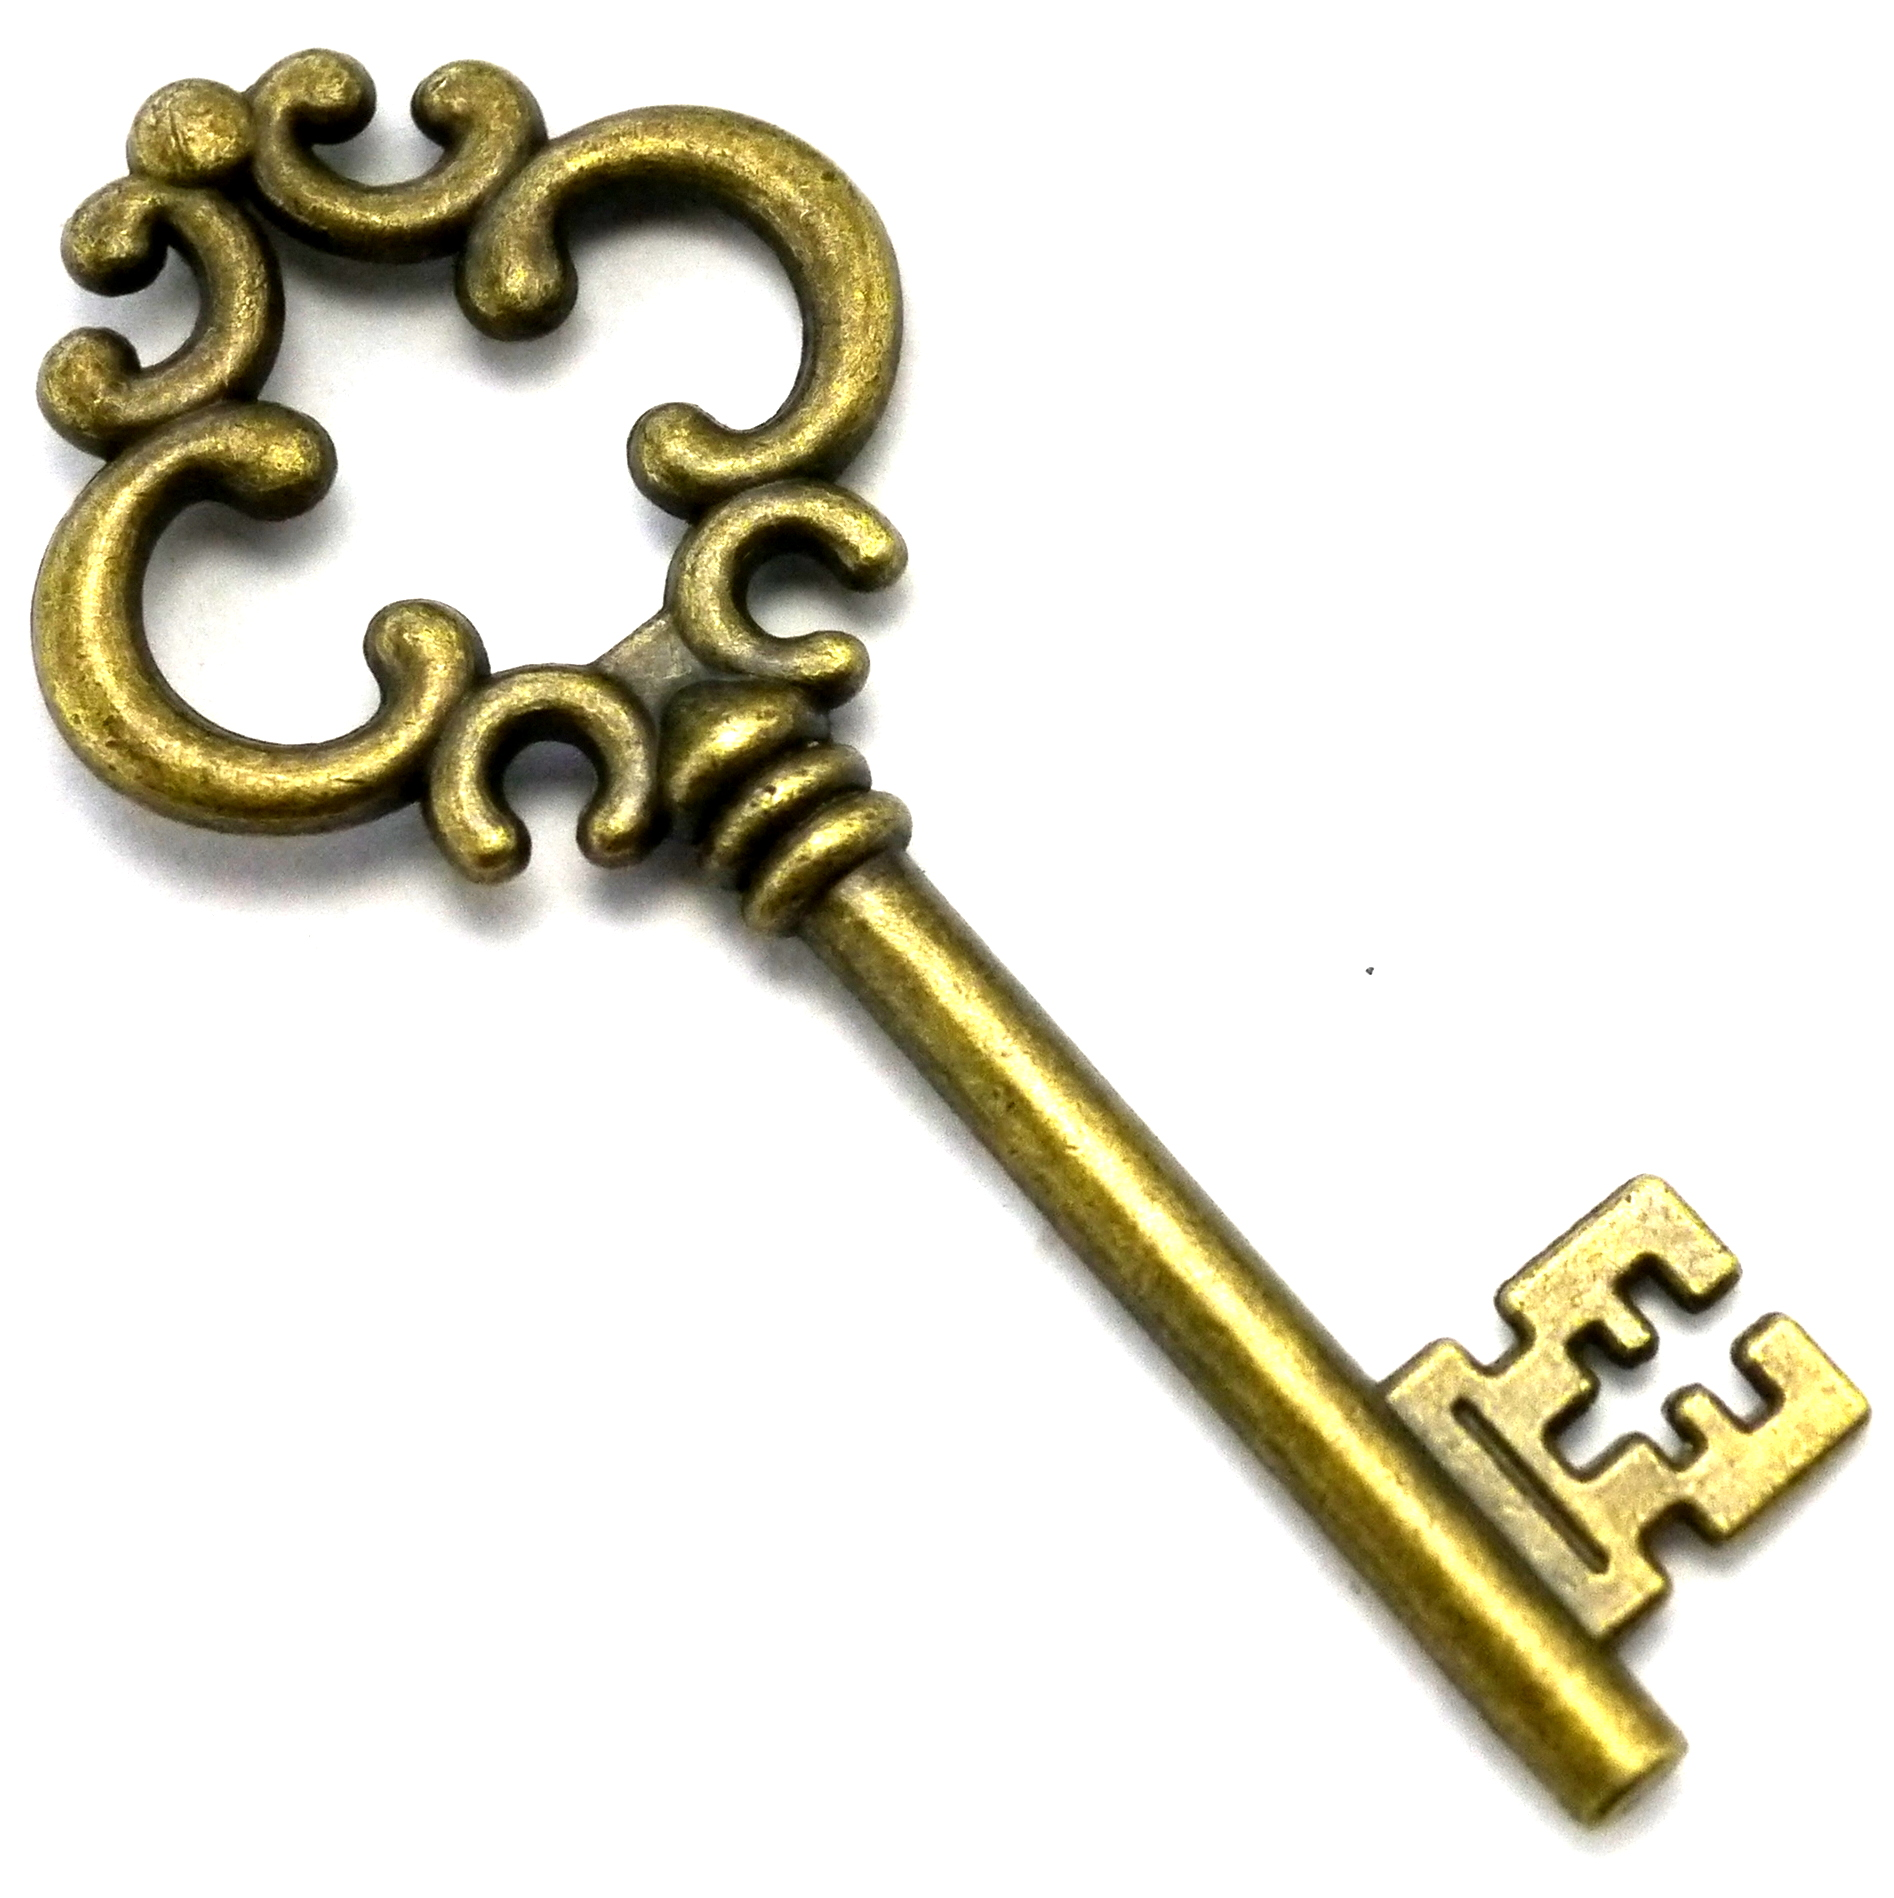 1894x1898 Clip Art Old Fashioned Key Clip Art